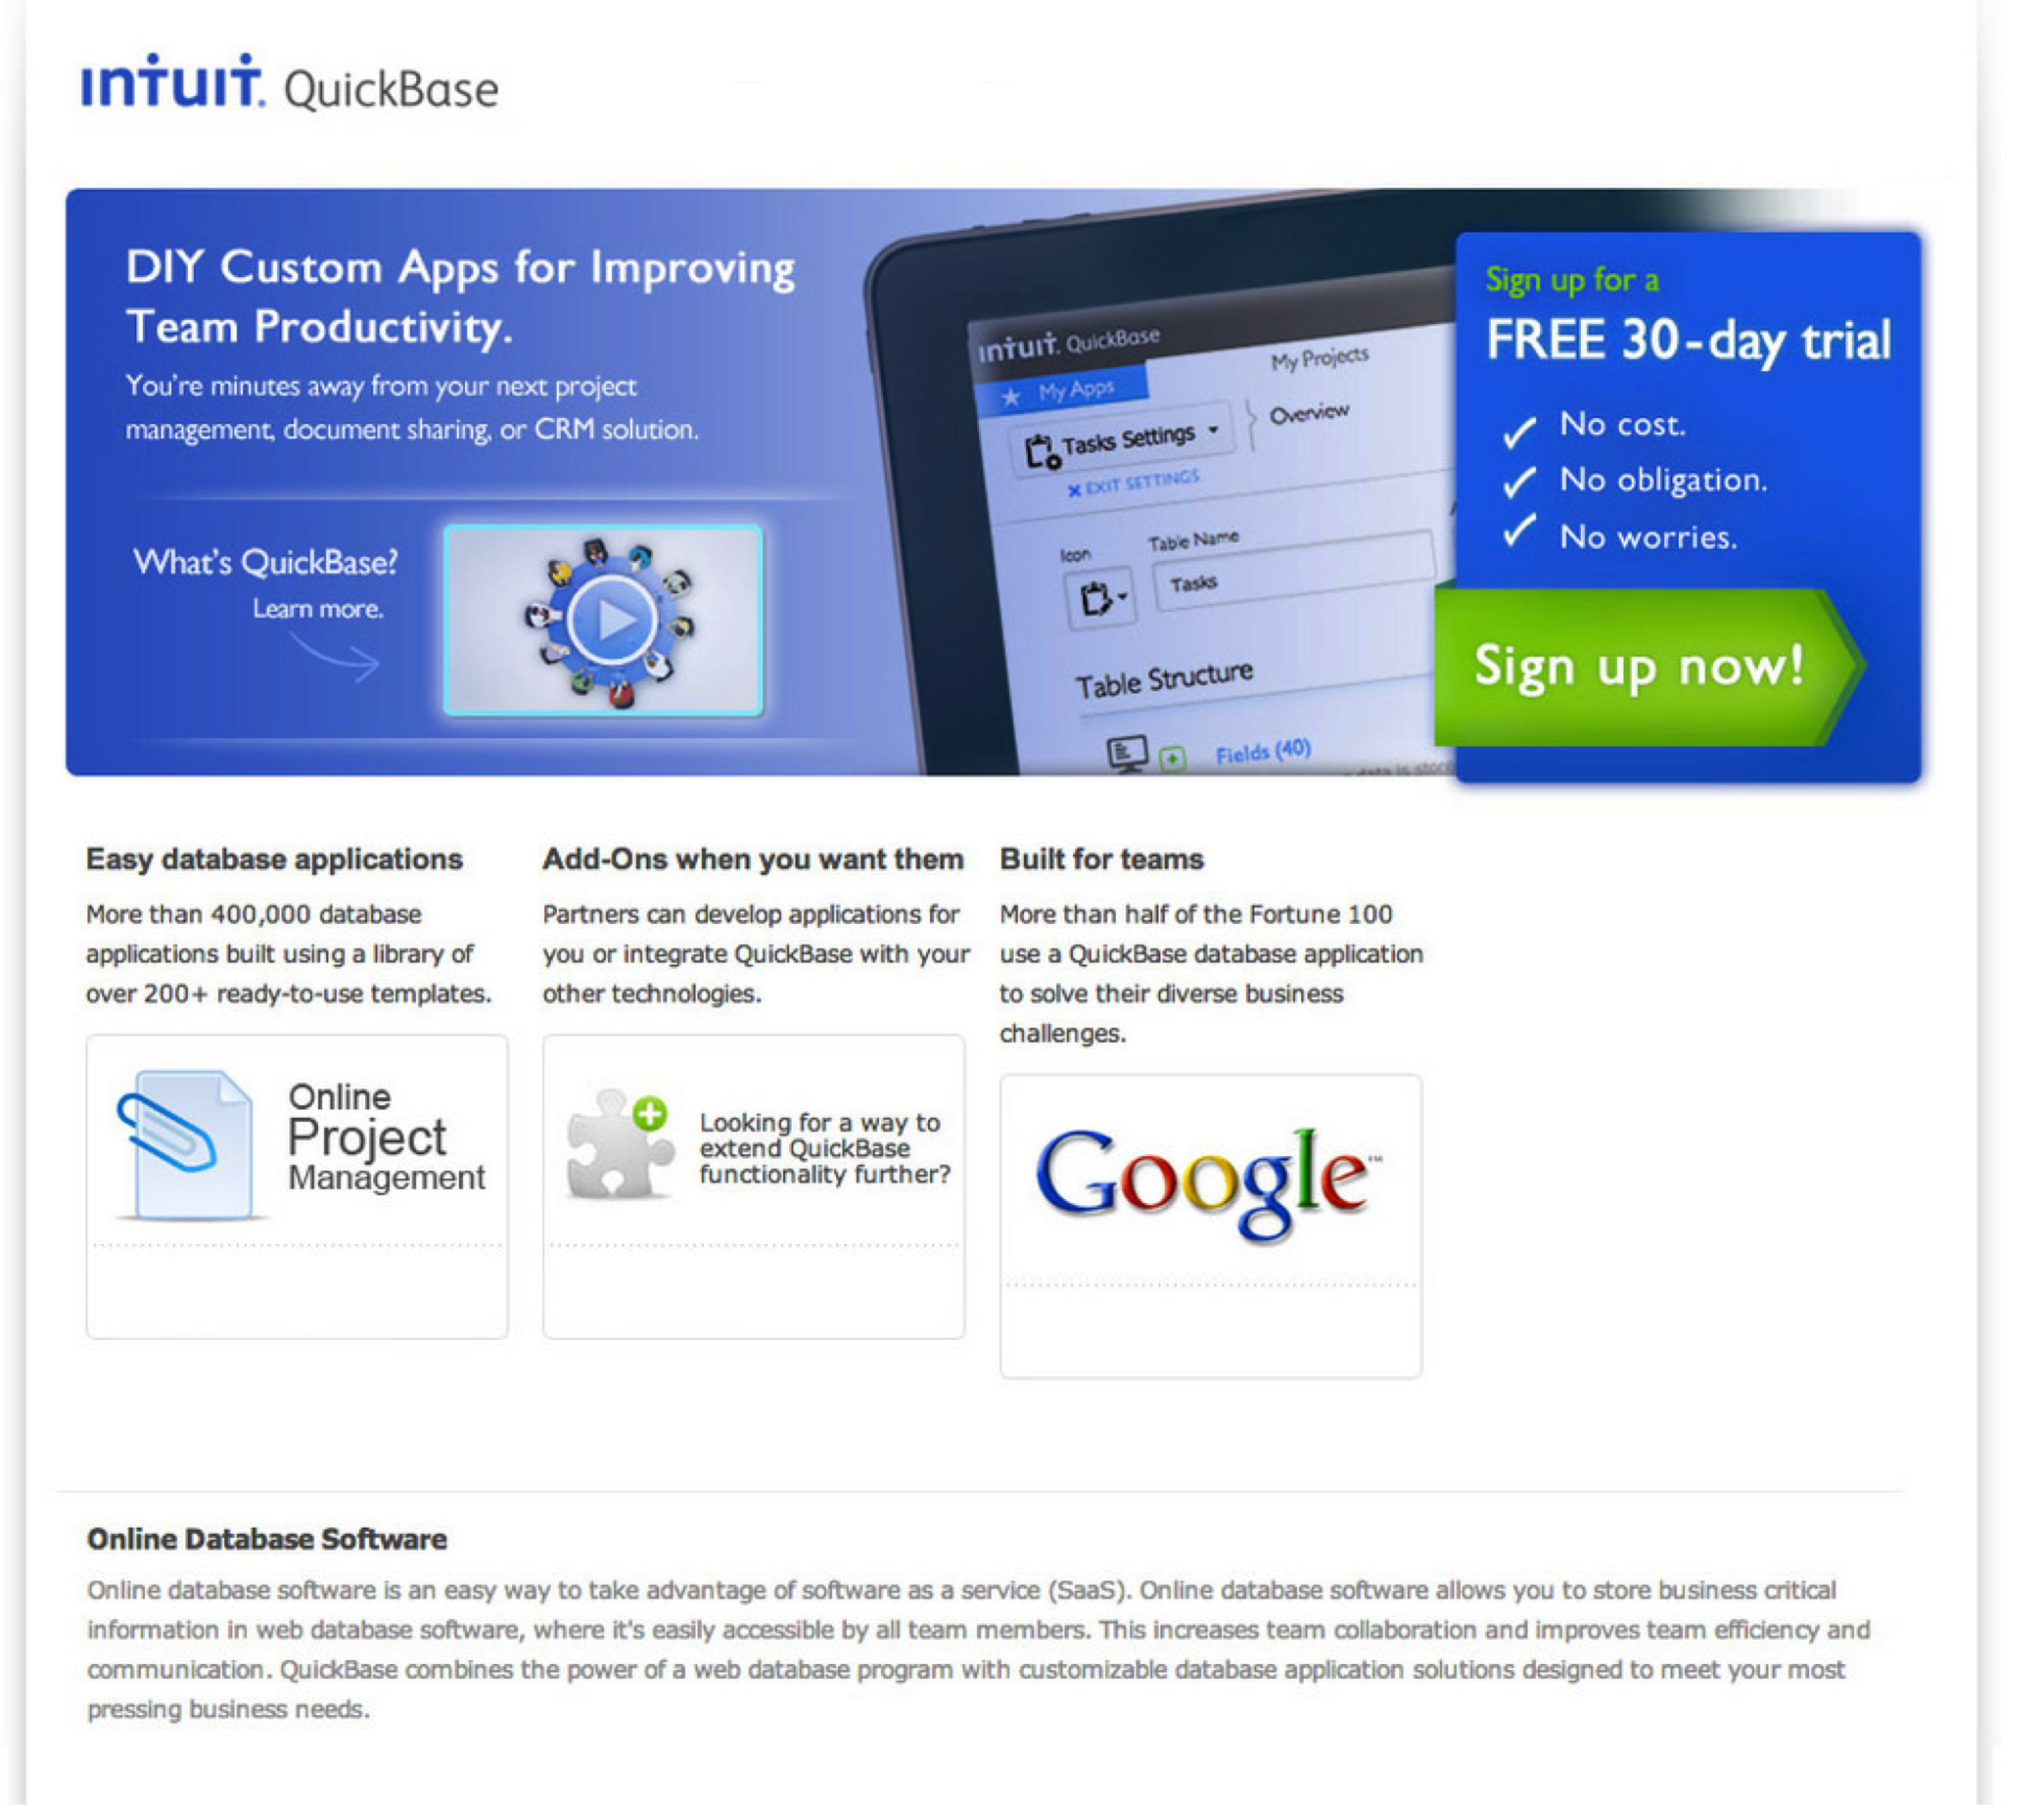 intuit-page-without-distractions